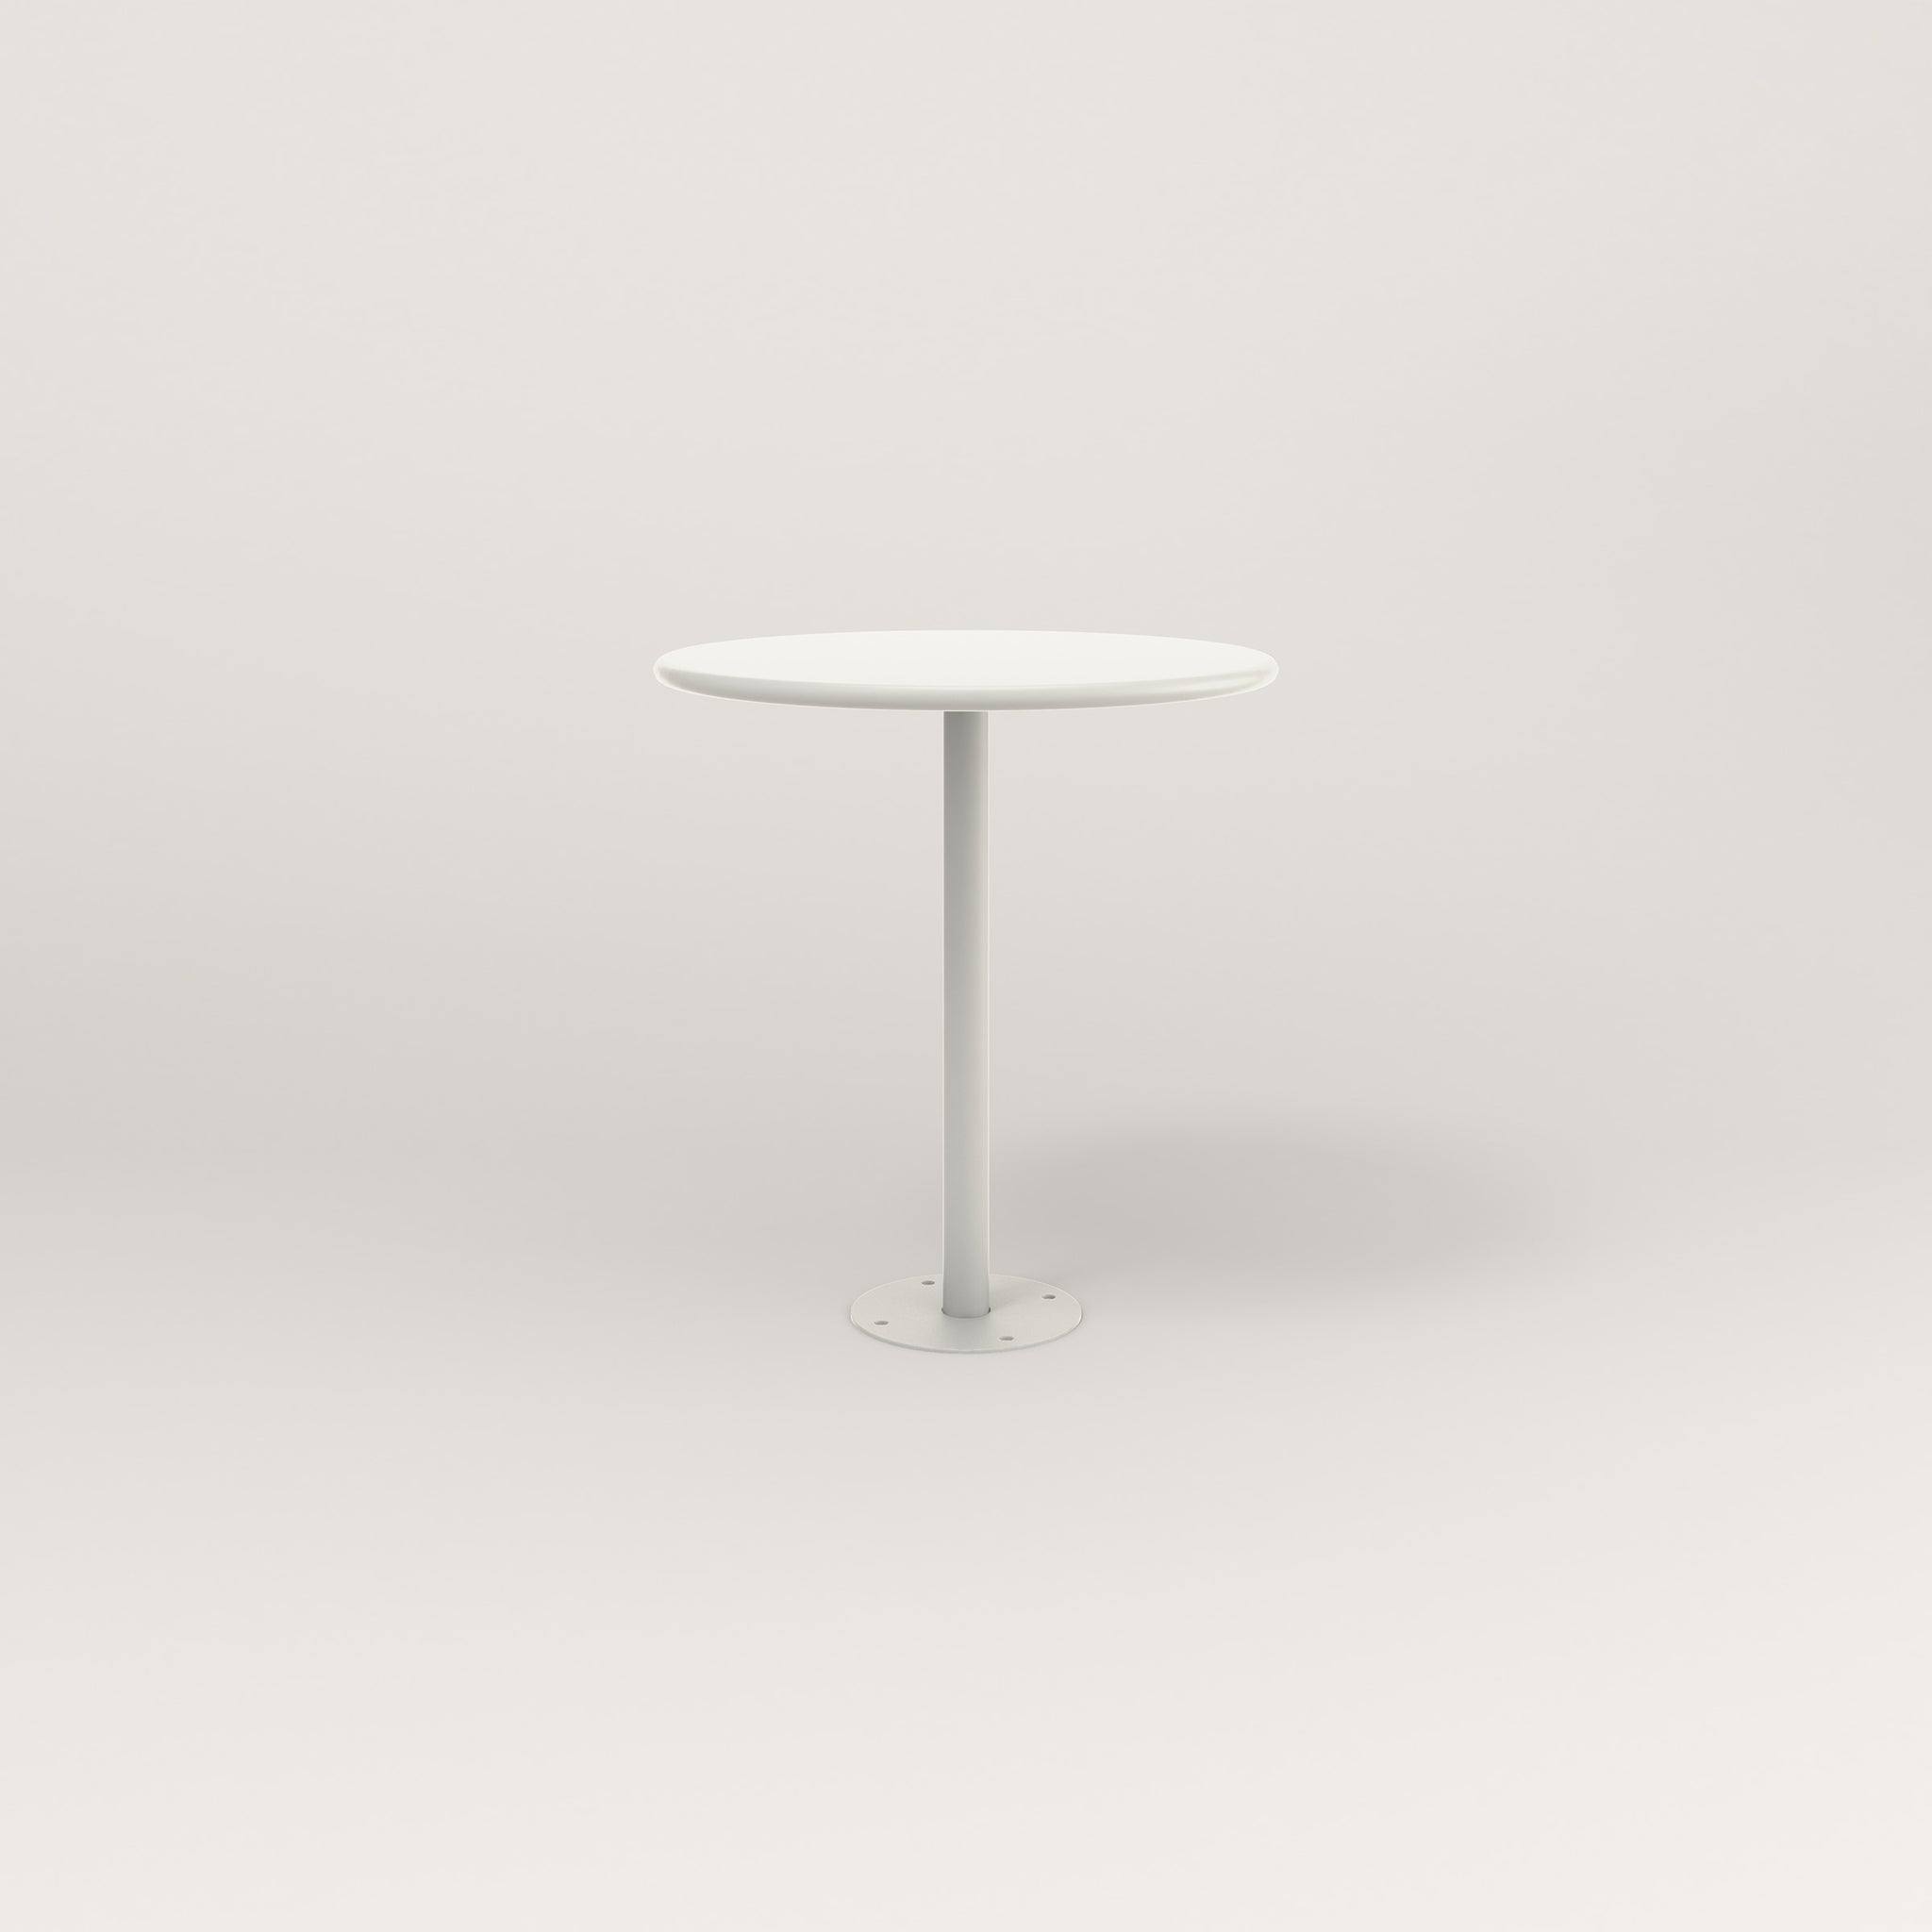 RAD Cafe Table, Round Bolt Down Base in spun aluminum and white powder coat.